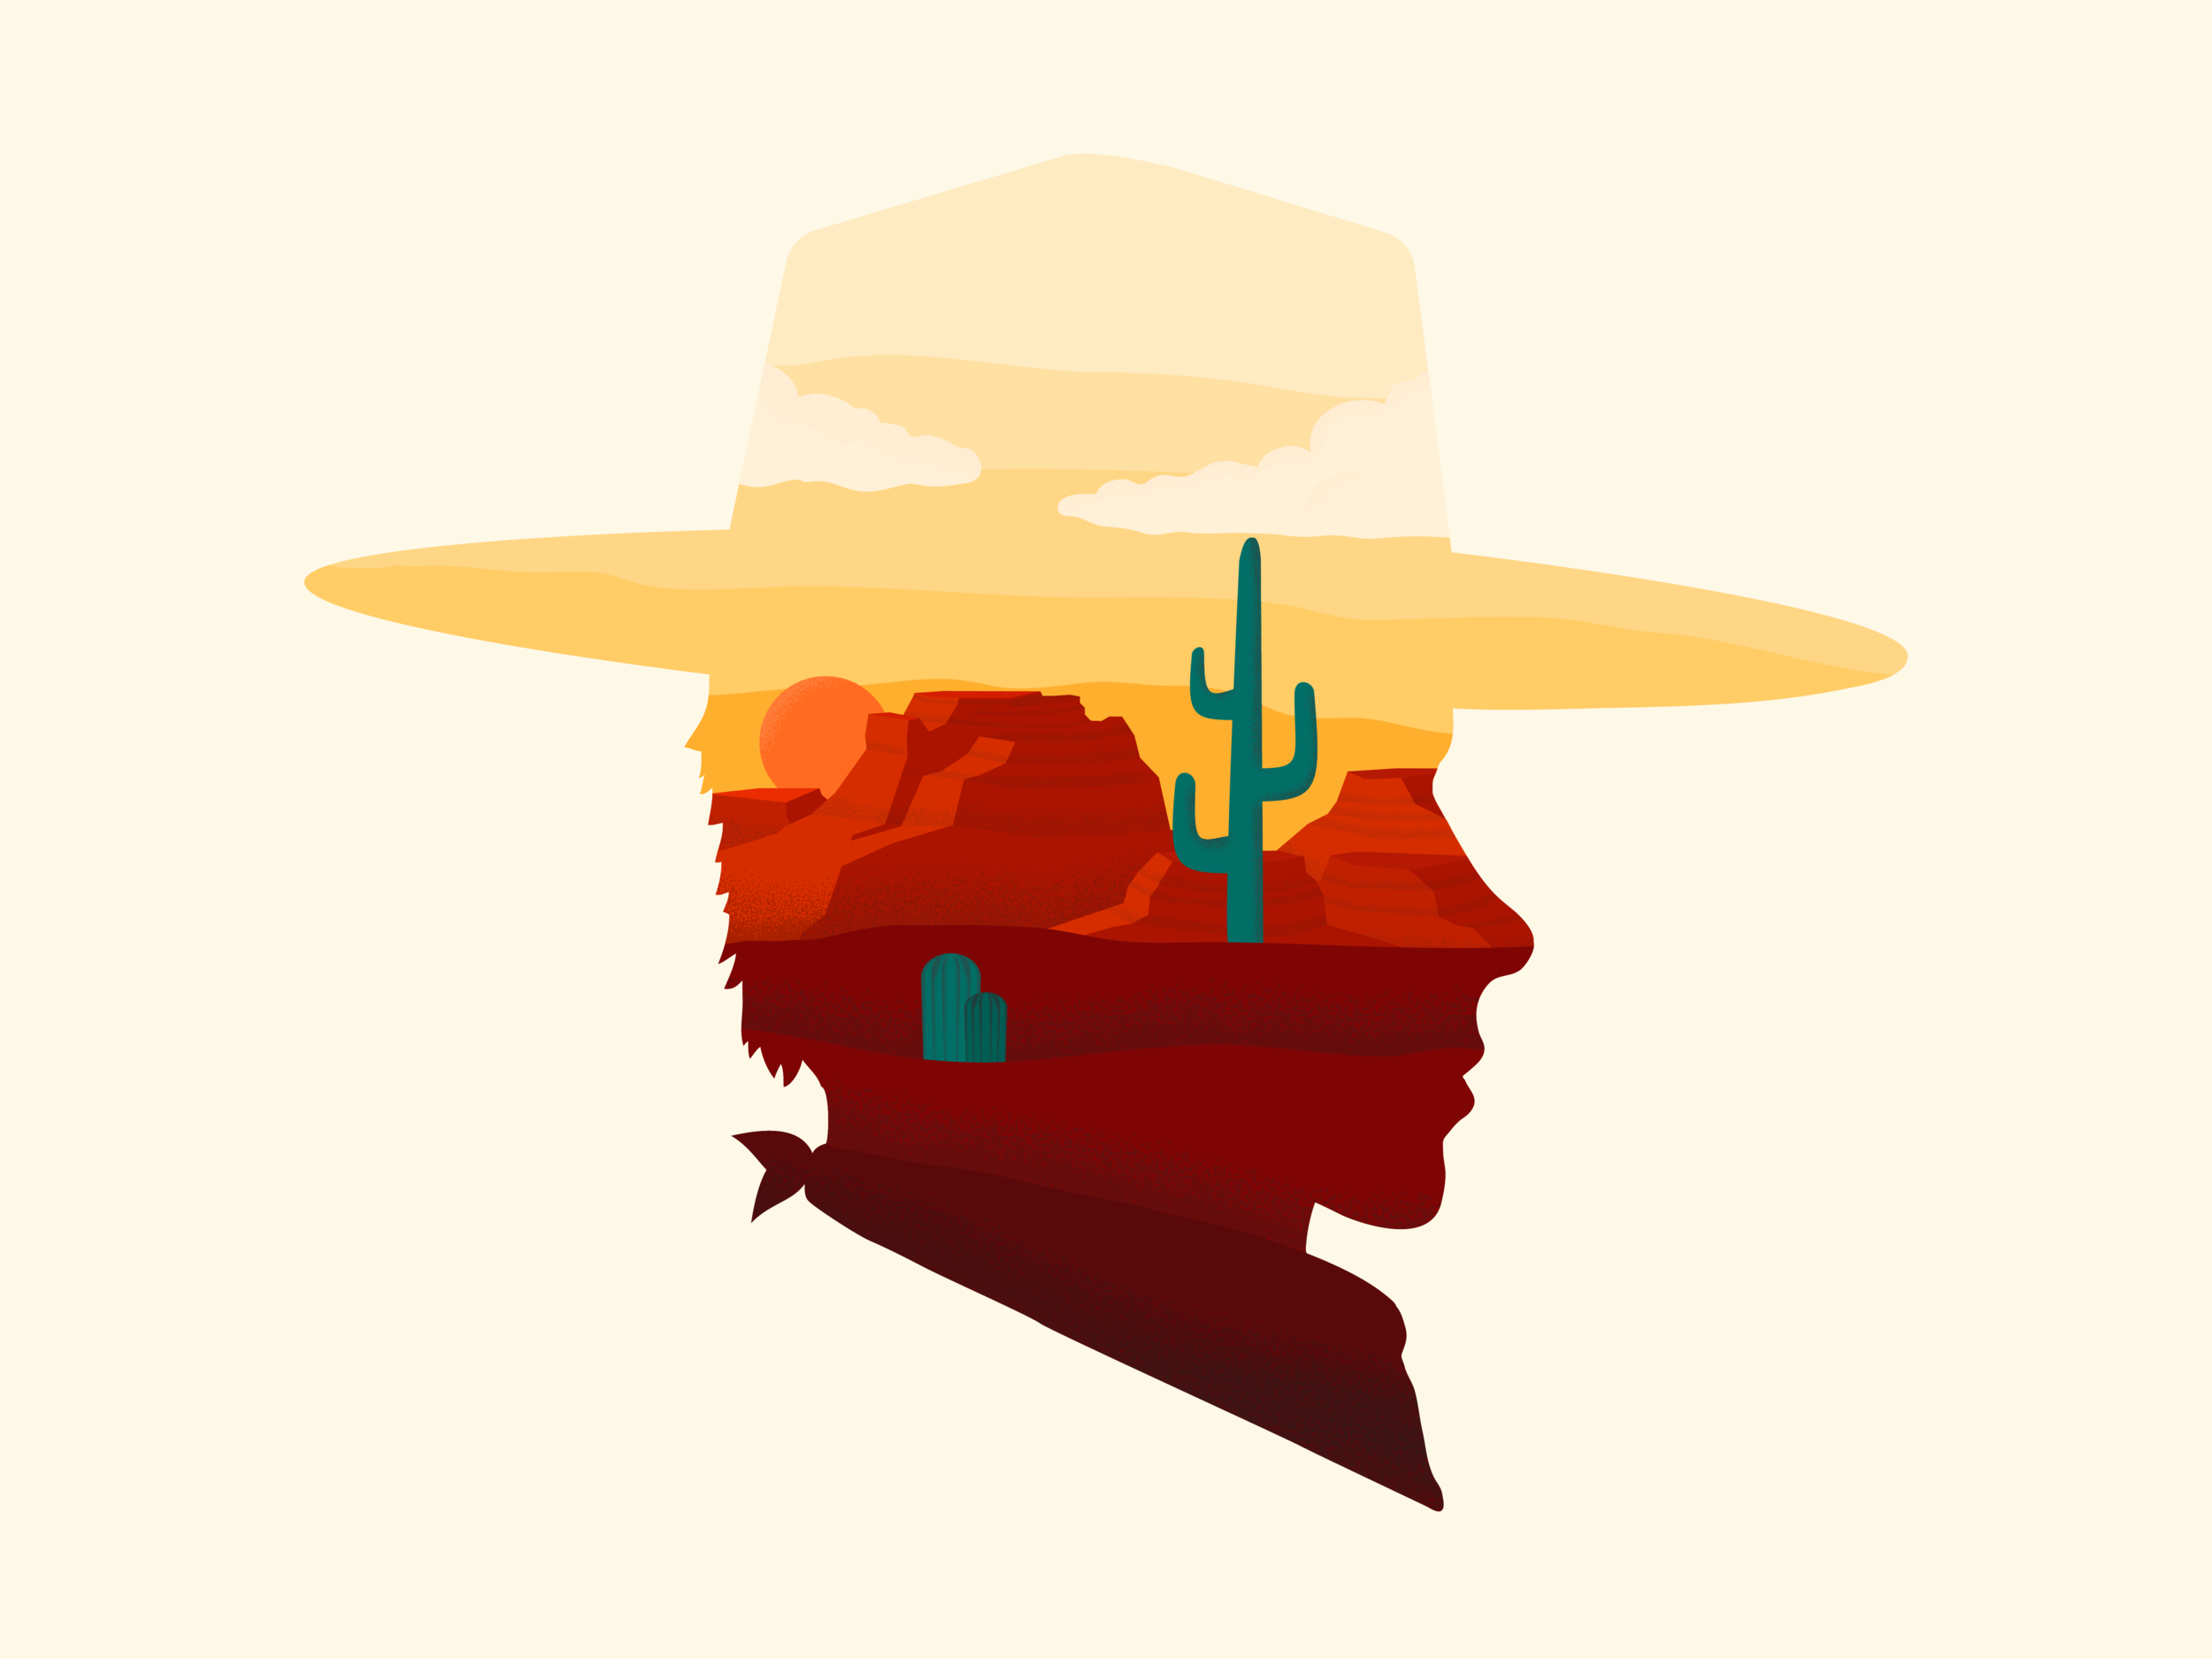 outlaw_desert_illustration-03-01.png